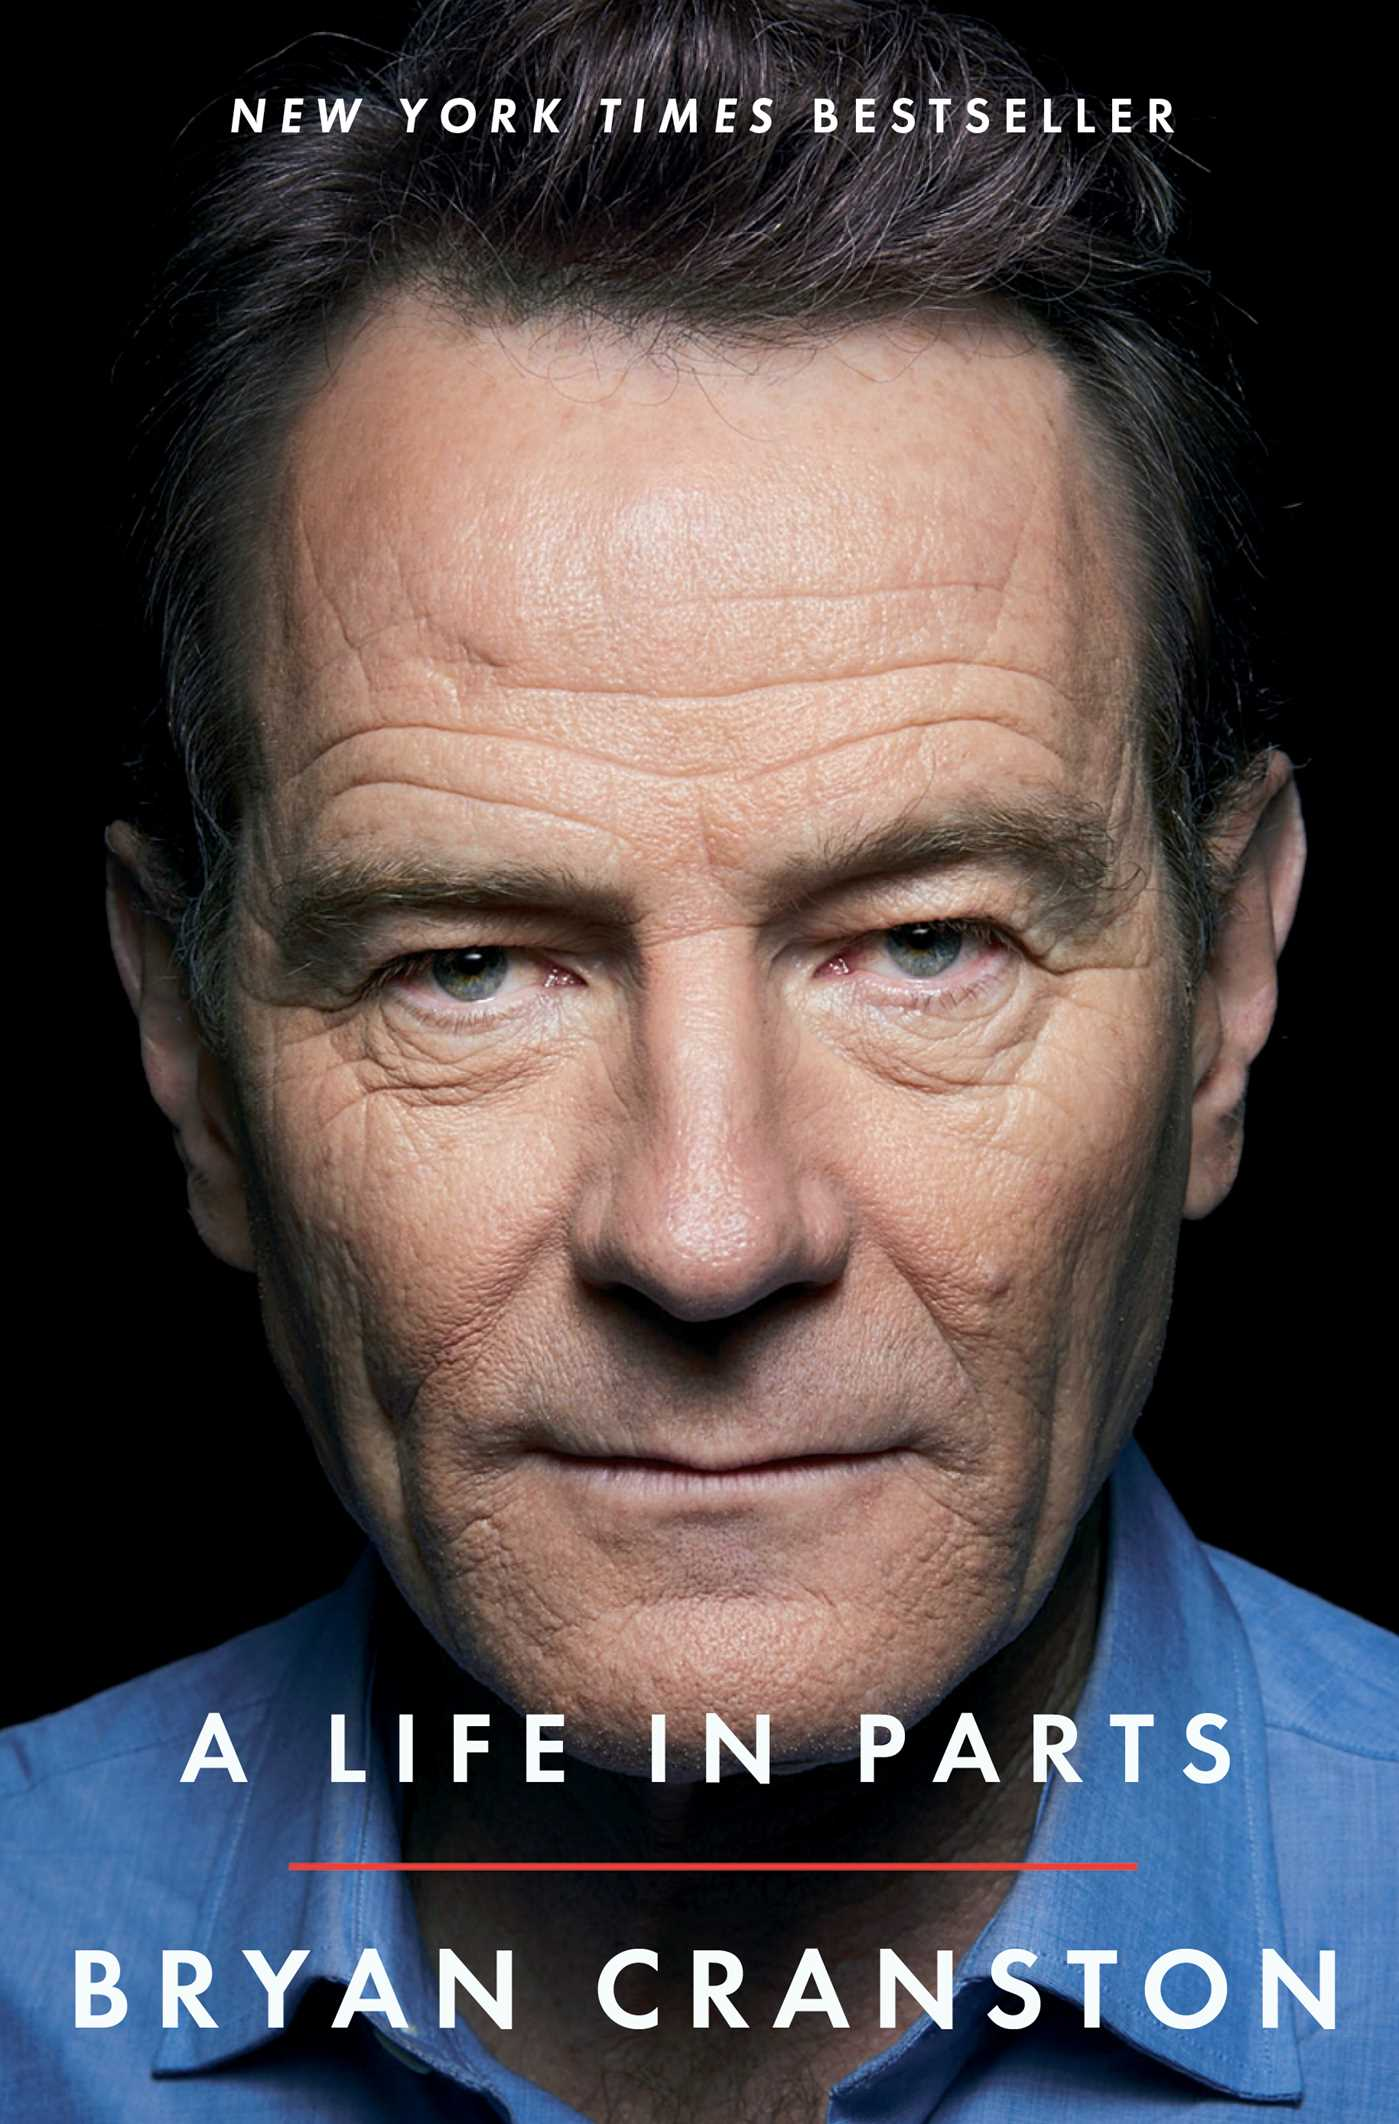 A life in parts 9781476793856 hr